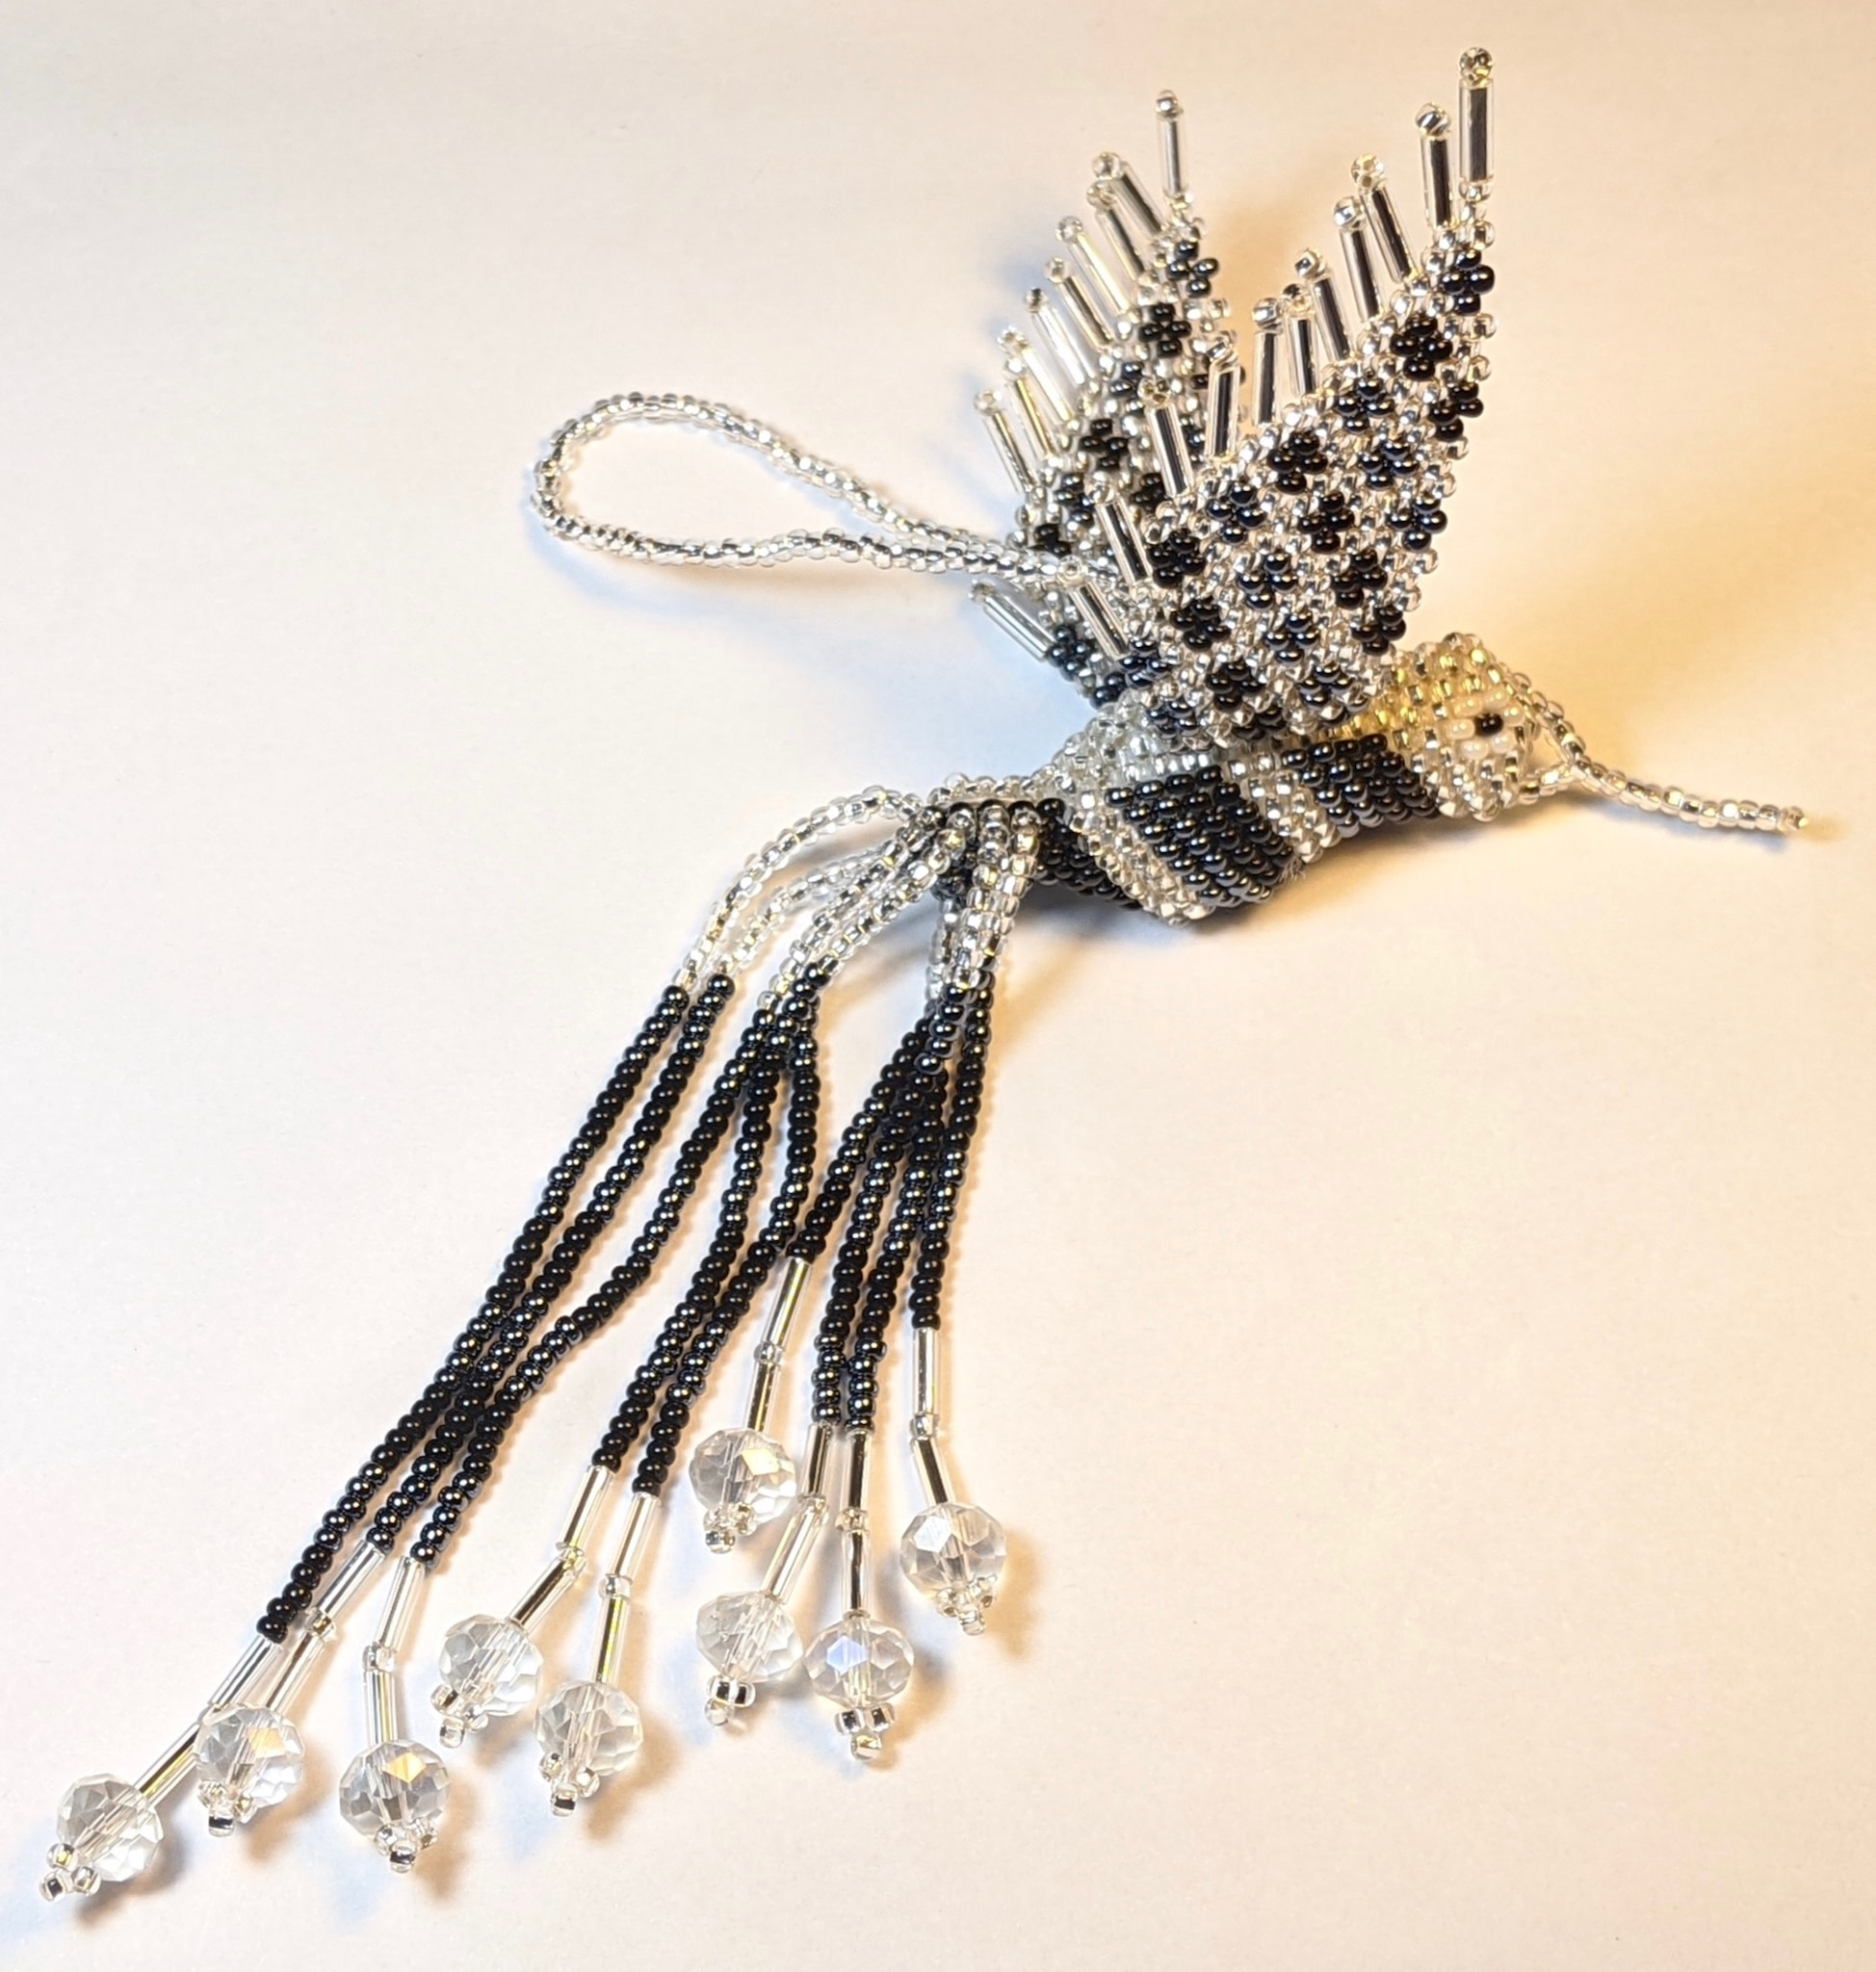 Hummingbird Beaded Ornament - Black, Hematite Gray, and Silver White